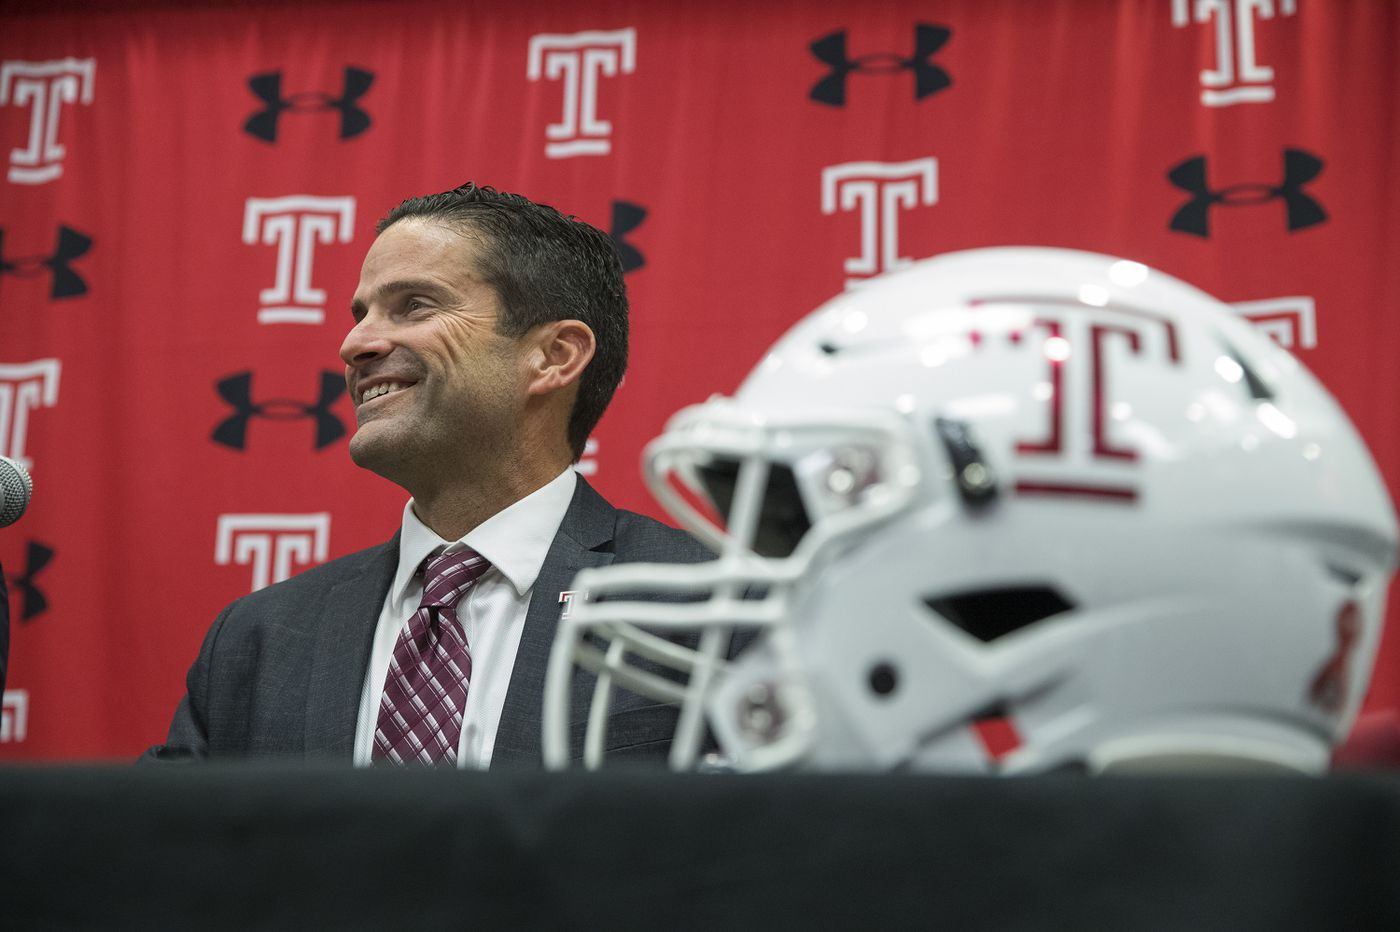 New Temple football coach Manny Diaz makes a favorable impression in his opening news conference